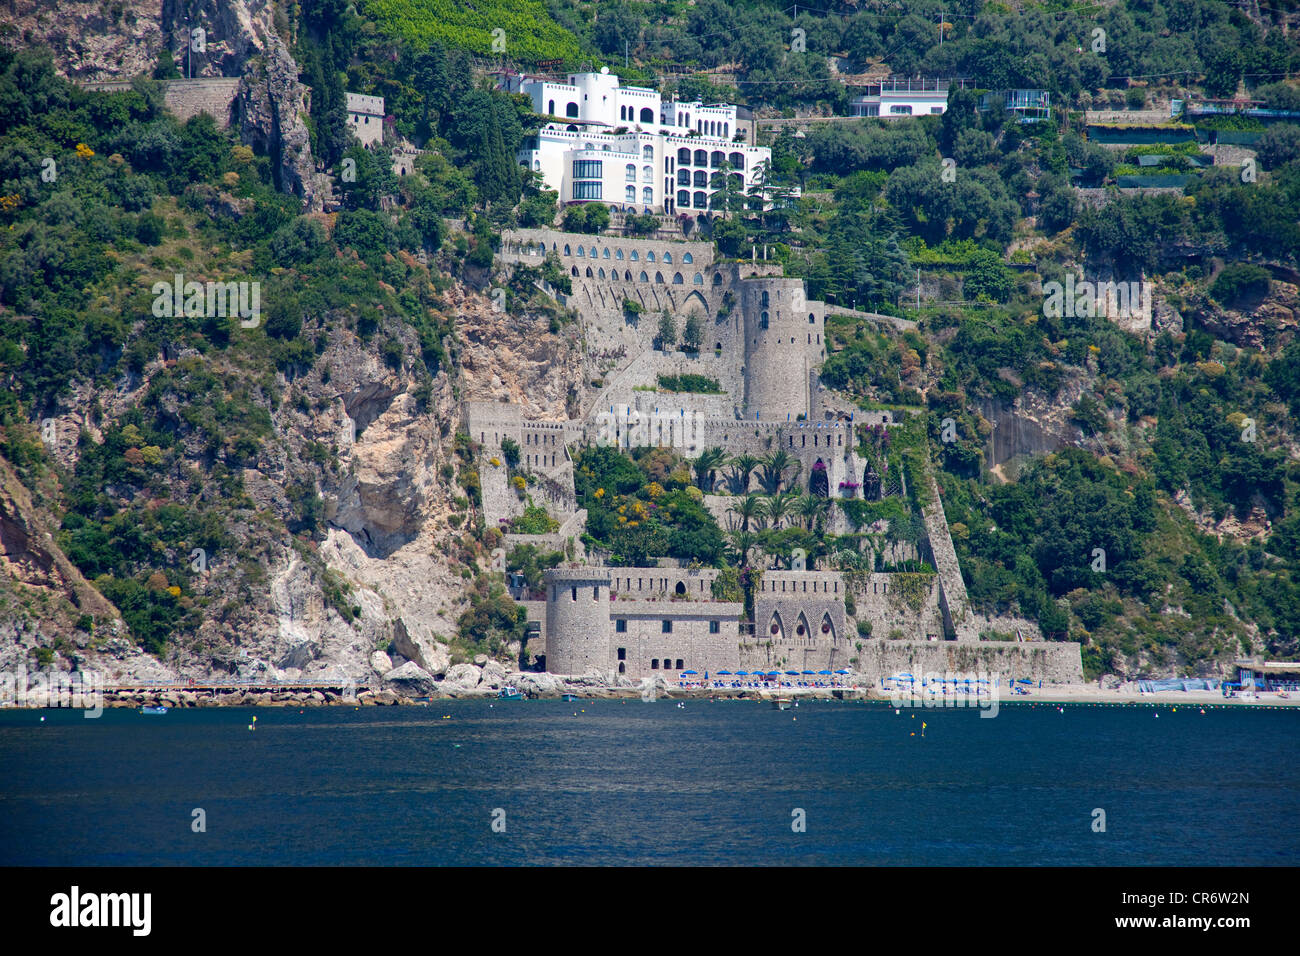 castle on the cliffs, coastal landscape with houses and villas